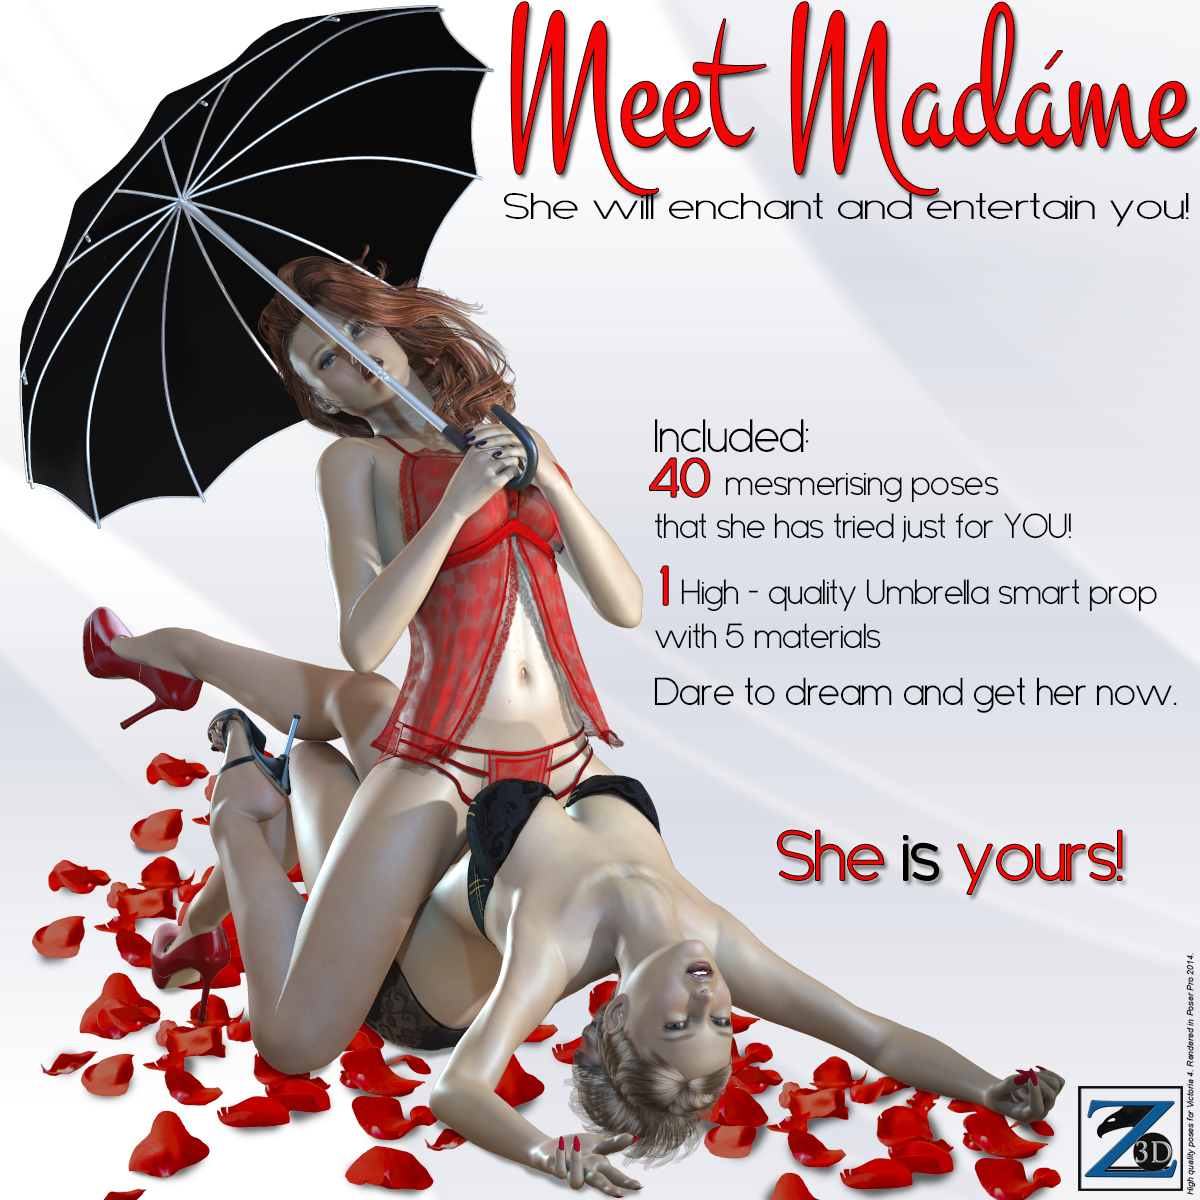 Z Meet Madame - Poses for V4